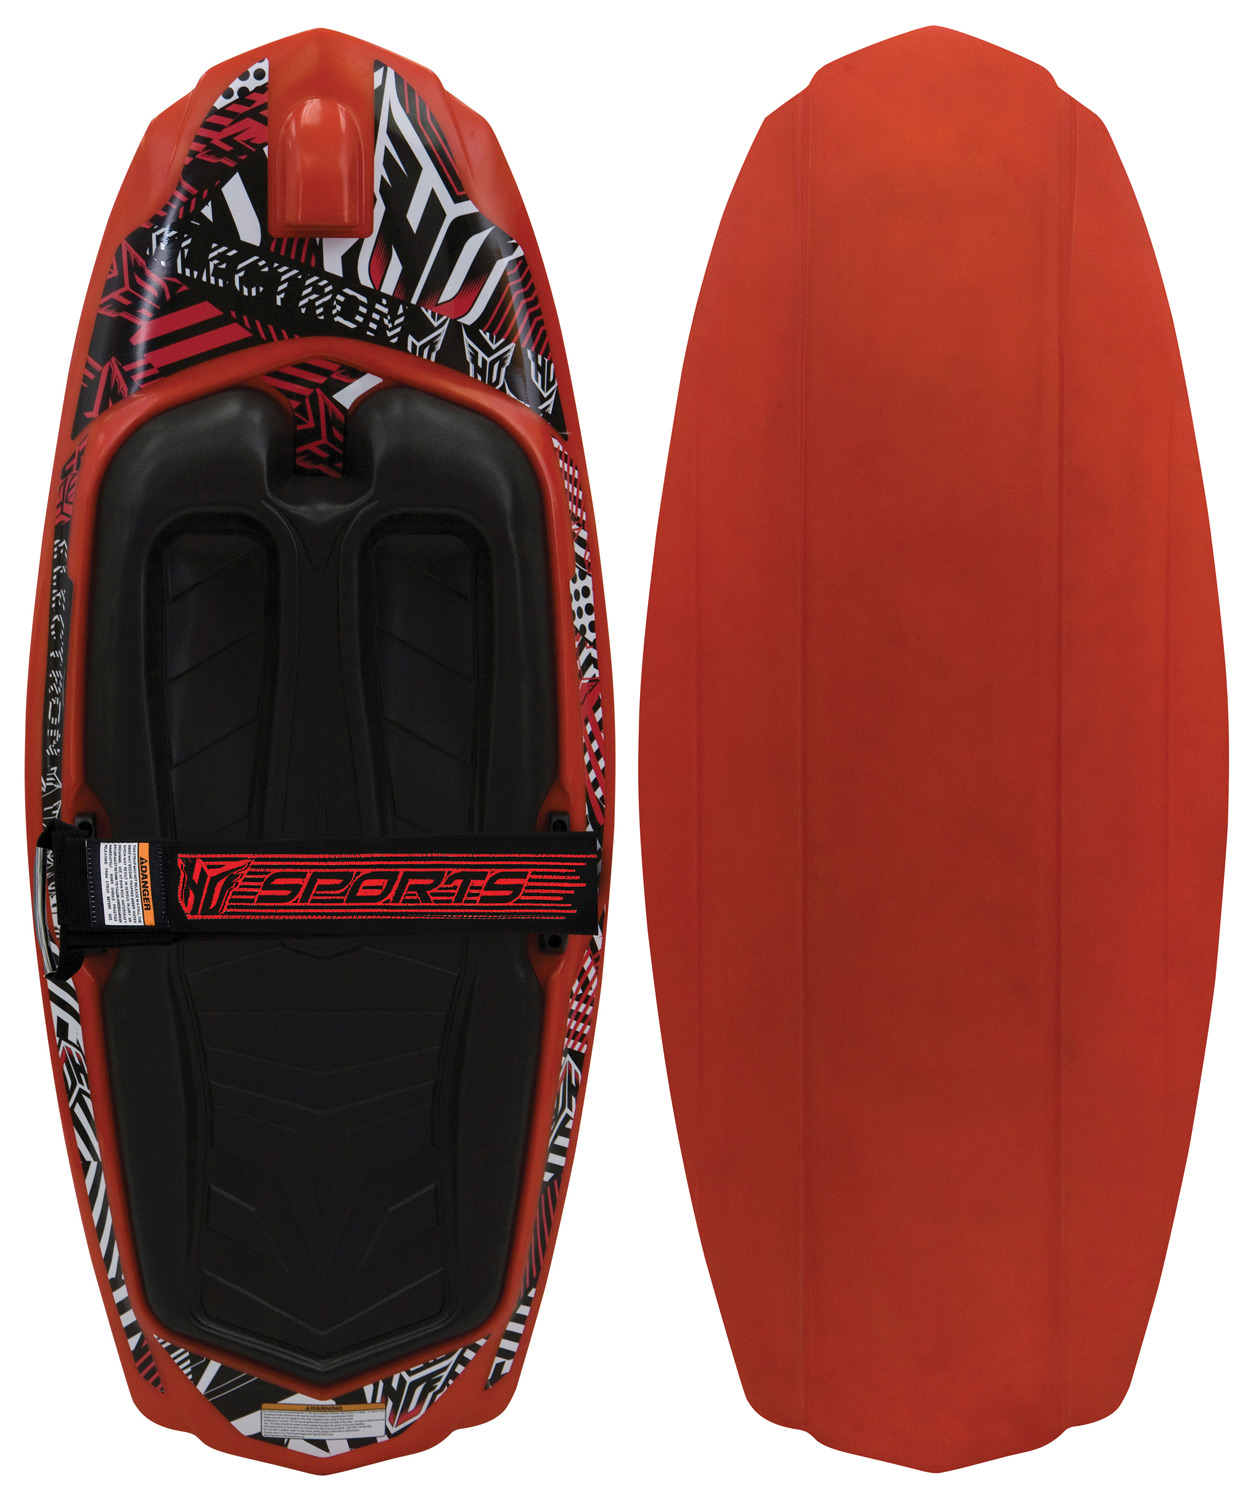 Feel the chargeKey Features of the HO Electron Kneeboard: 4 Molded in Fins for Great Control HO's Exclusive Easy Start System Large Orthotic Pad for Soft Landings PowerLock Single Locking Strap for a Comfortable Ride - $104.95